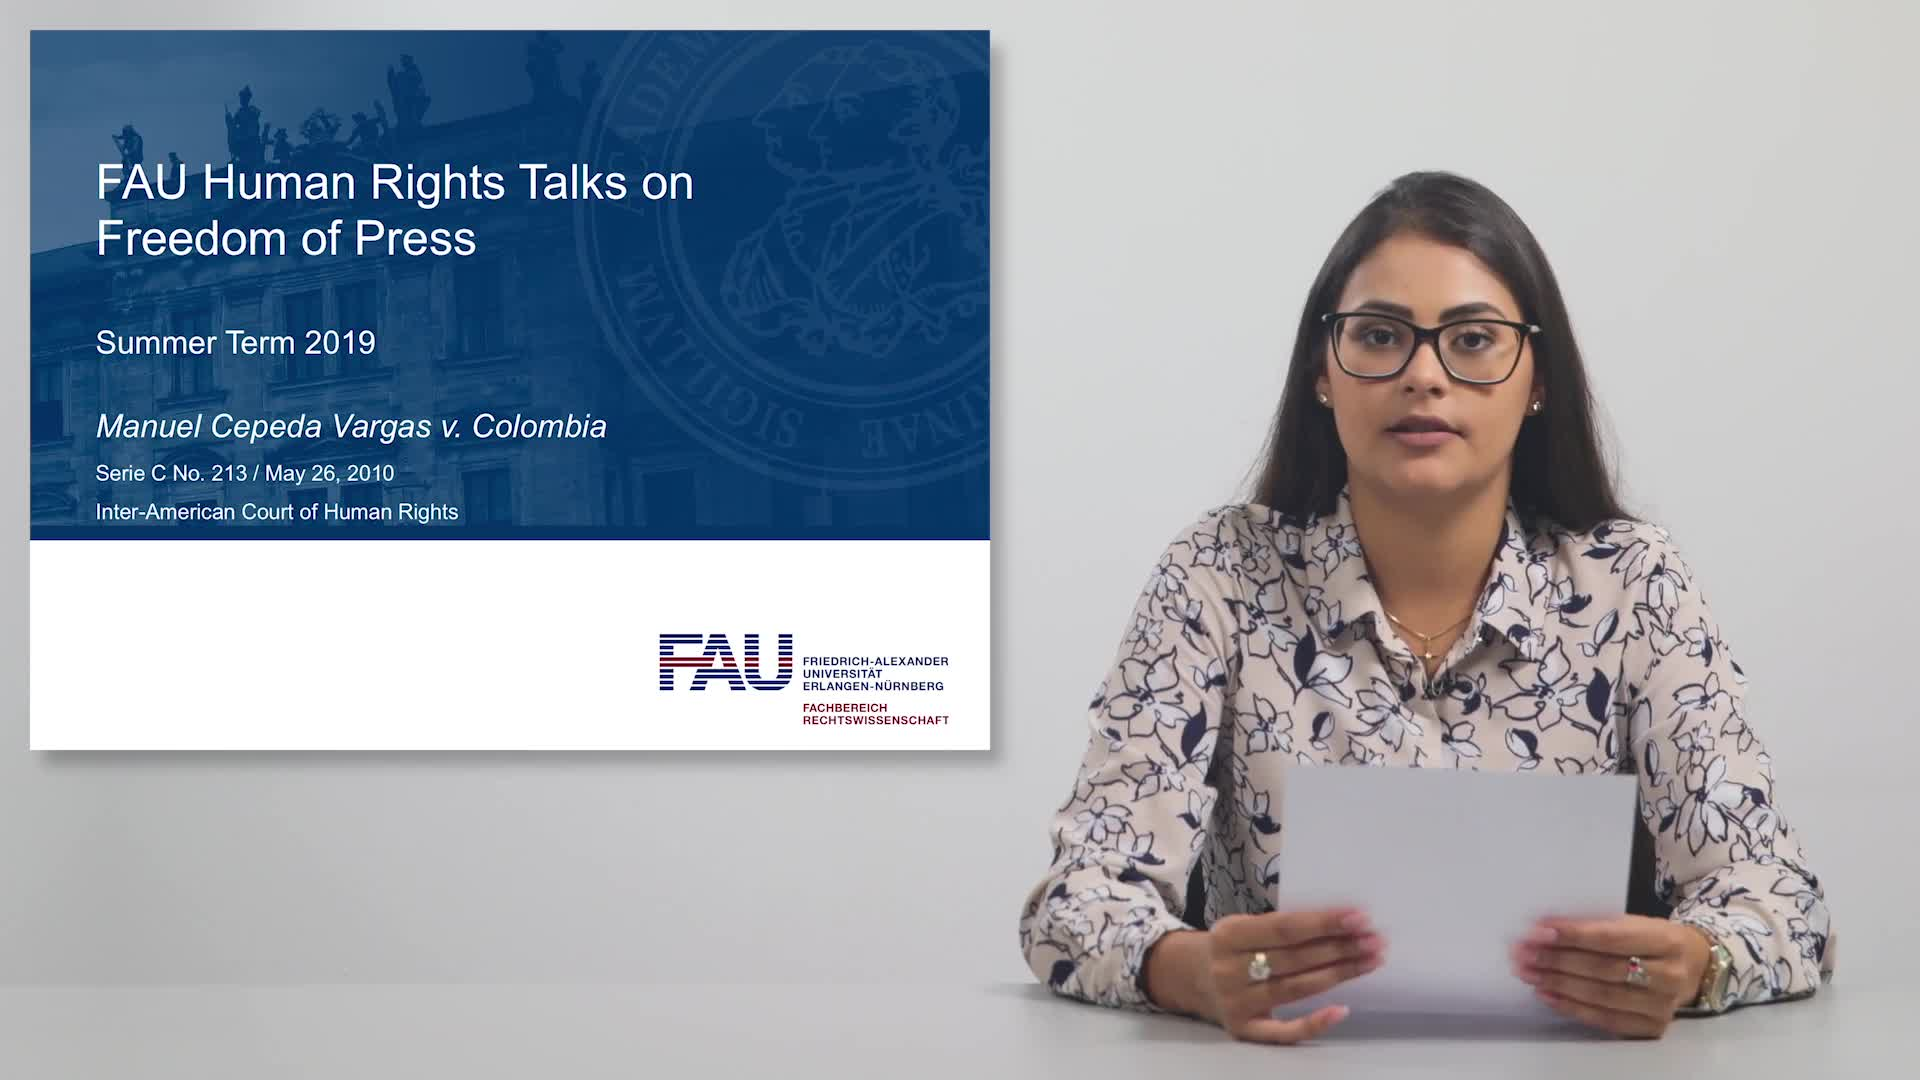 FAU Human Rights Talks – Summer Term 2019: Manuel Cepeda Vargas v. Colombia preview image